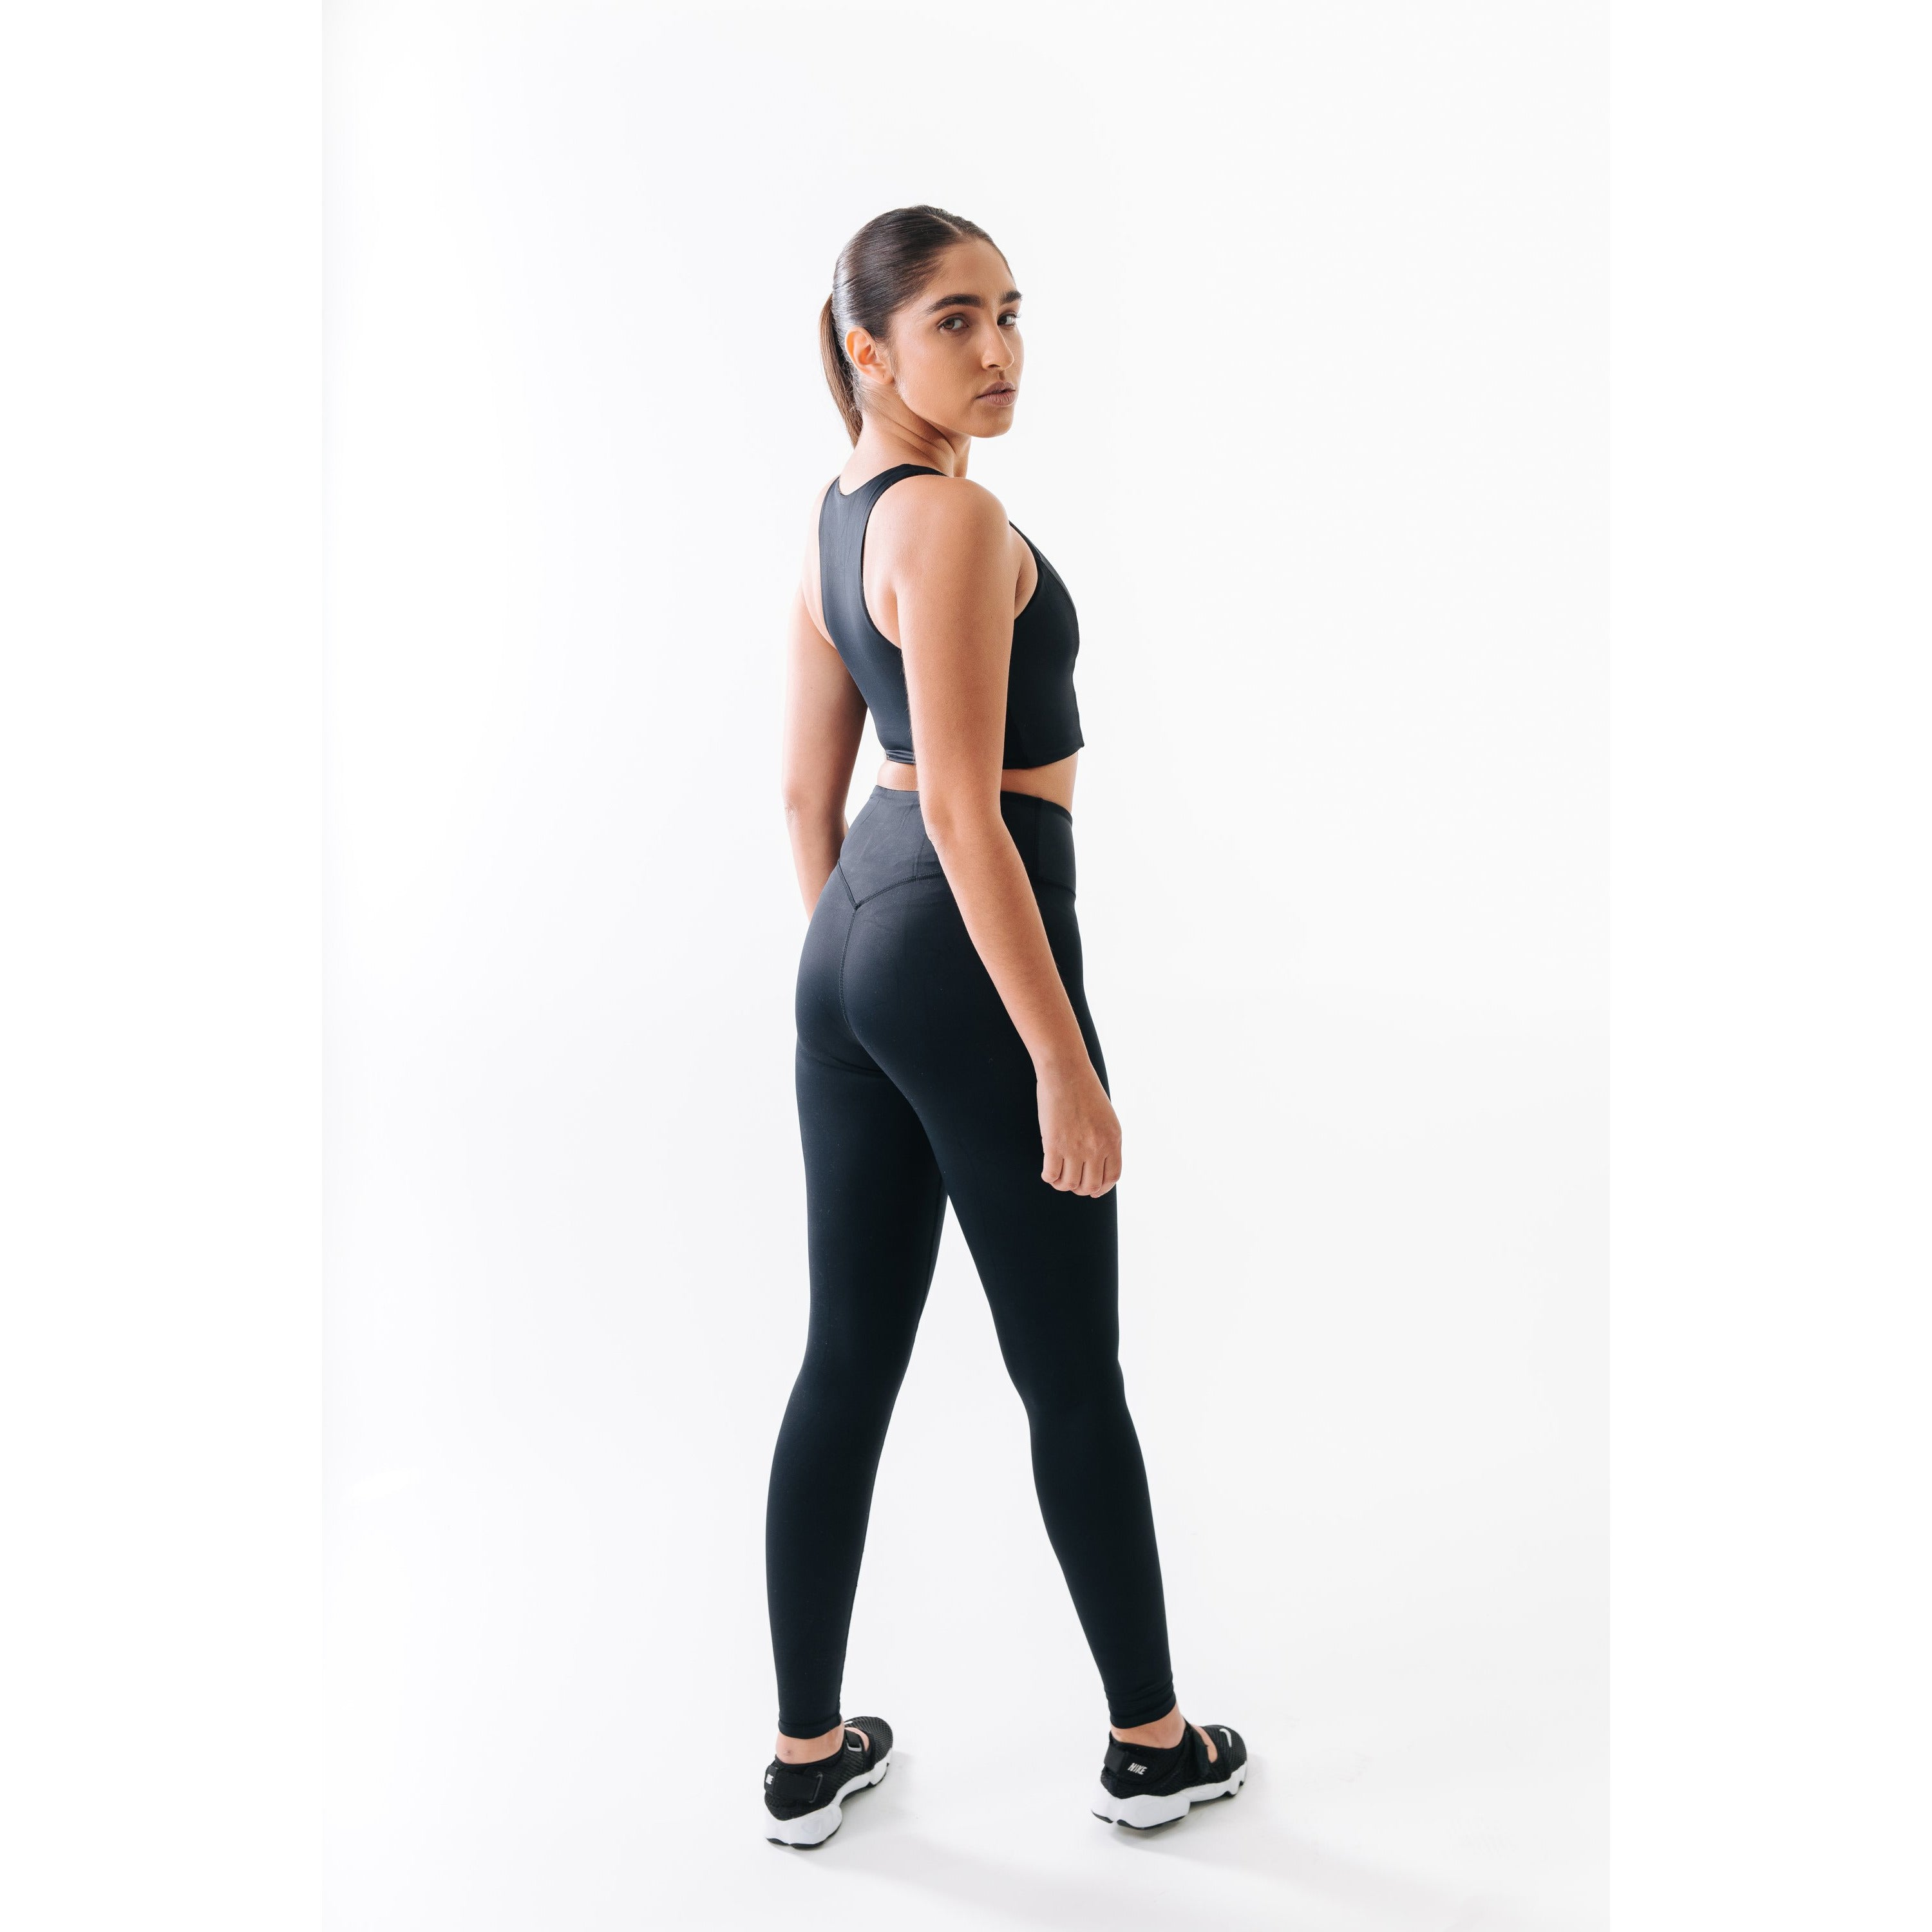 Athleisure Set - Sports Bra and Leggings